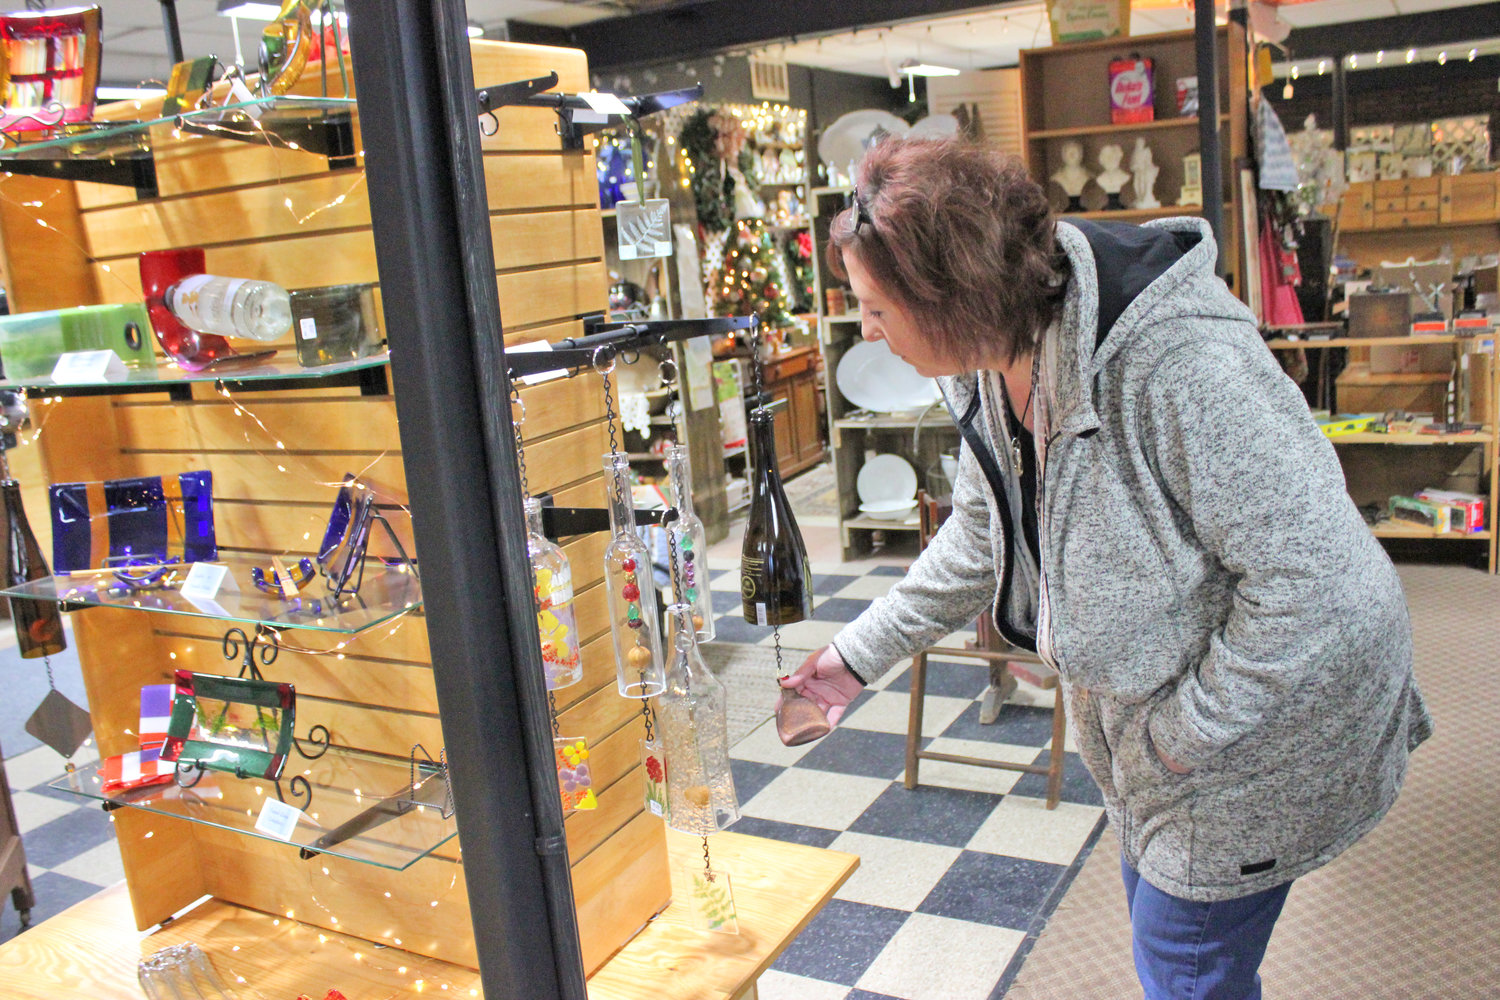 HANDMADE FINDS — Eclectic co-owner Valerie Thron-Pollack looks over handmade glassware made by Chittenango artist Cindy Helmer on sale at the Eclectic Mercantile.